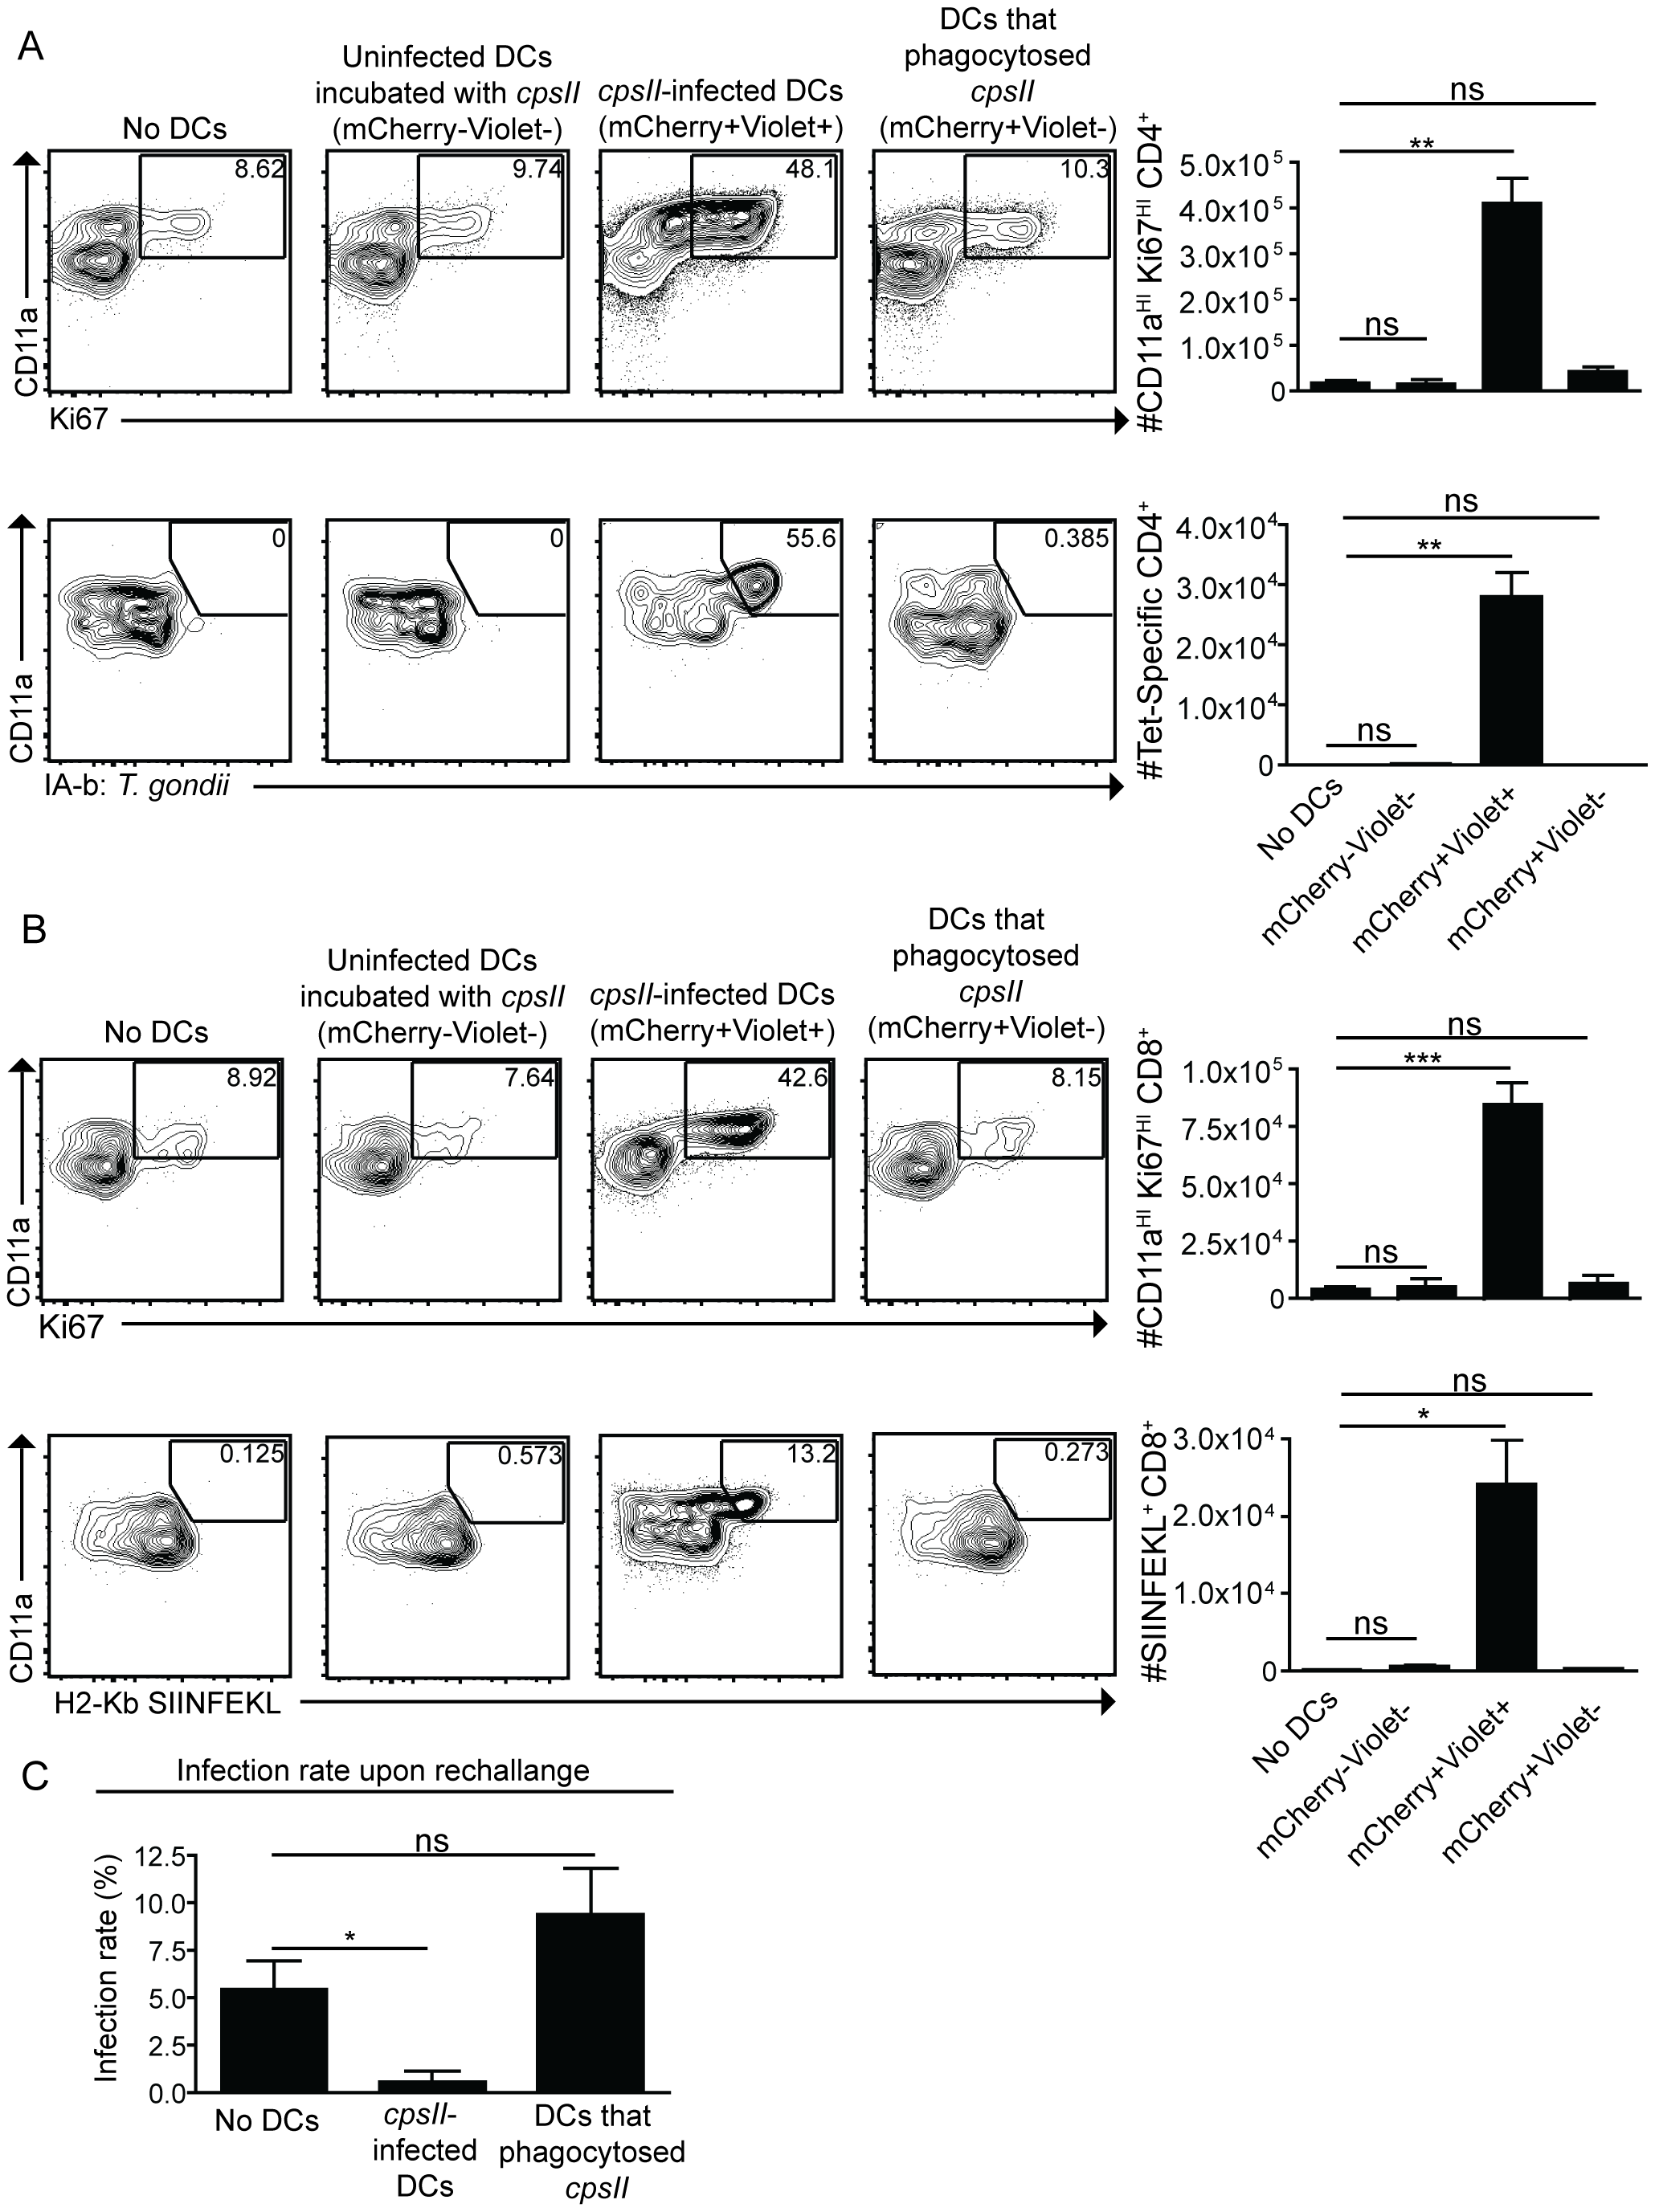 Infected cells are sufficient to induce CD4<sup>+</sup> and CD8<sup>+</sup> T cell responses.